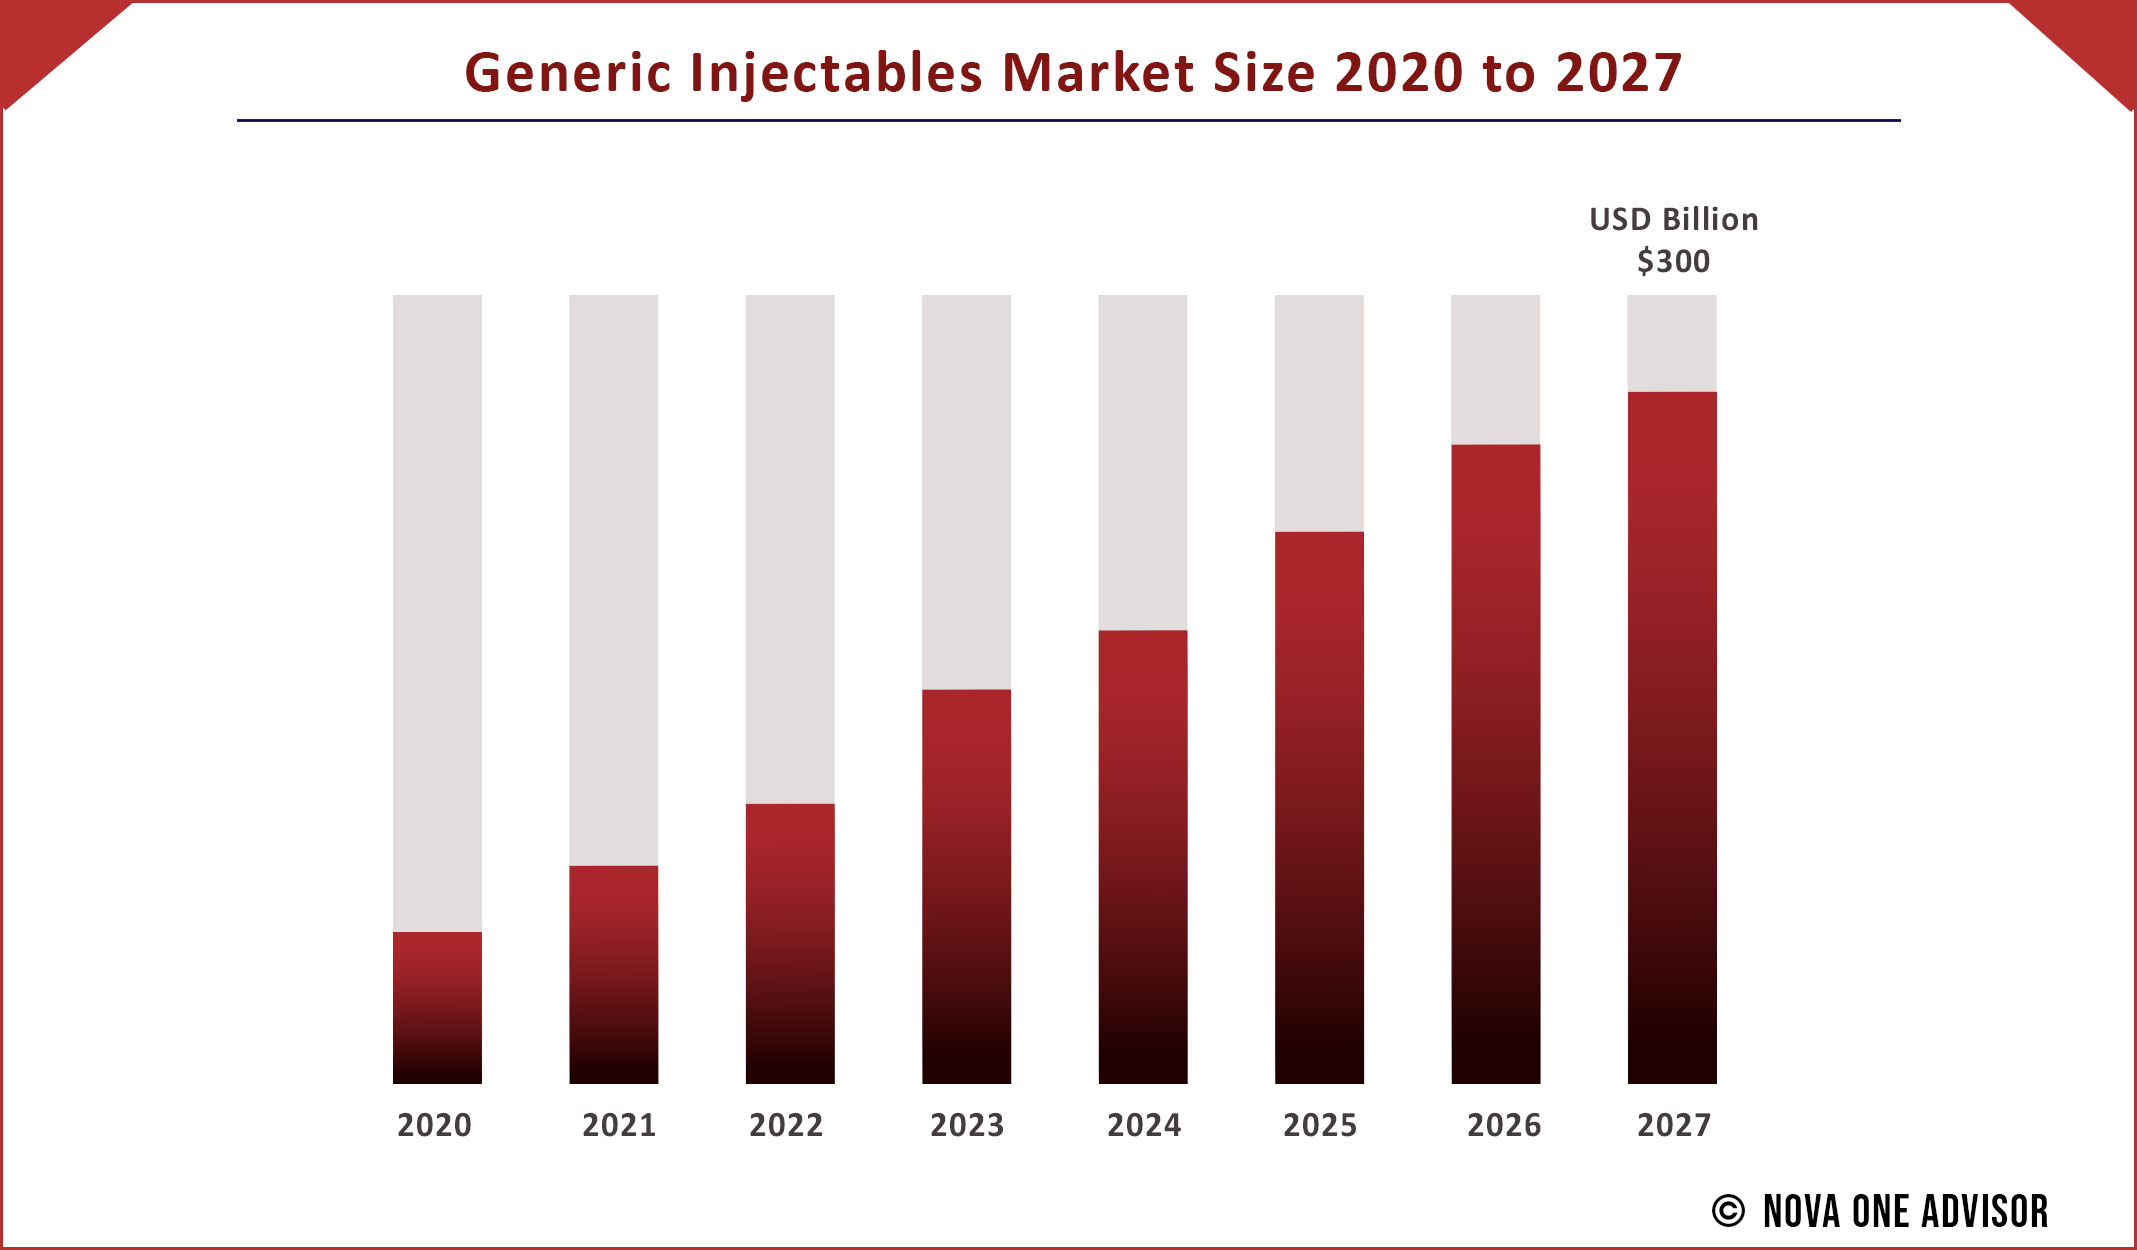 Generic Injectables Market Size 2020 to 2027